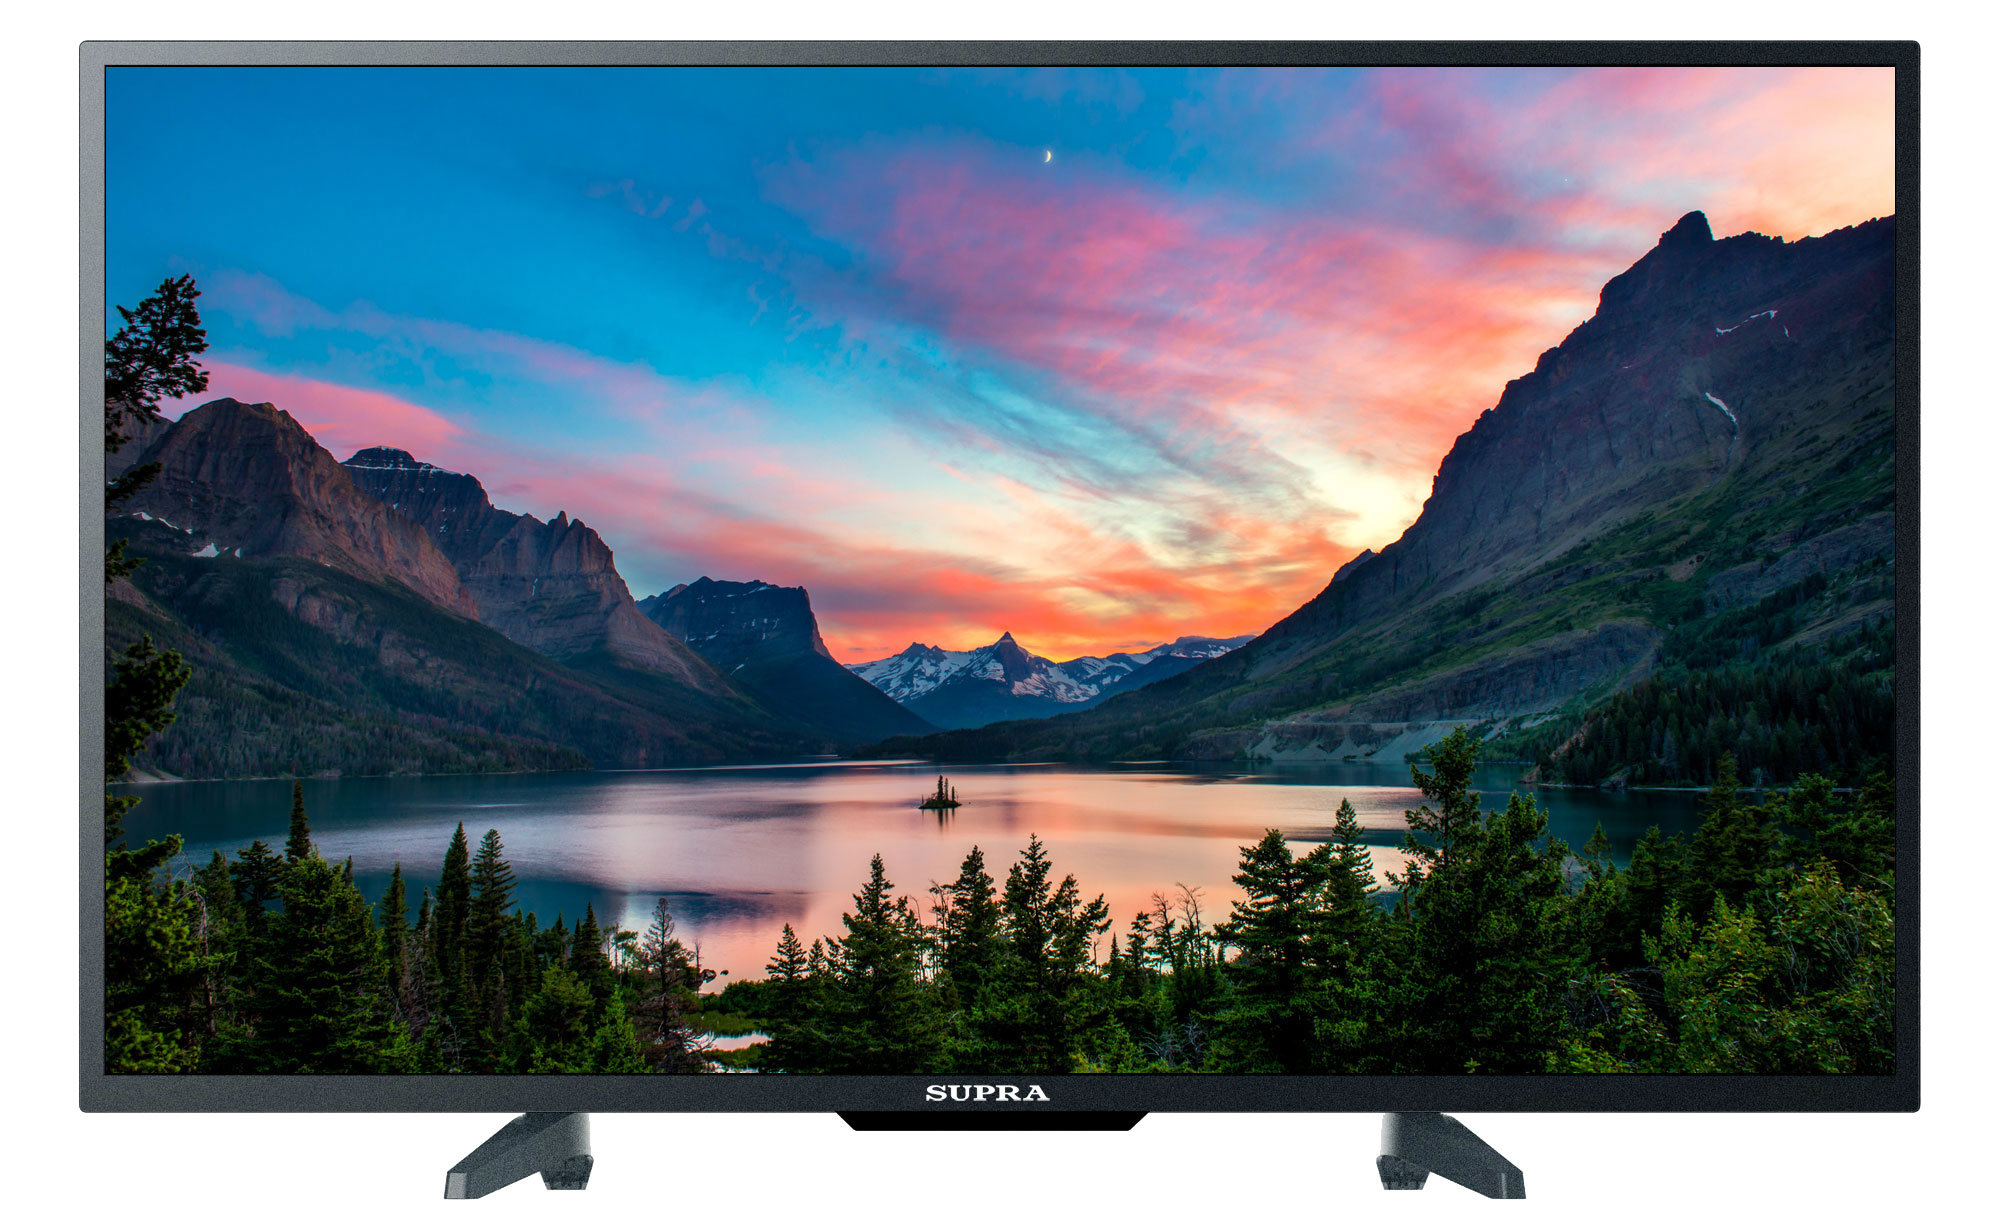 Телевизор Supra STV-LC40LT0012F LED 40' Black, 16:9, 1920x1080, 120000:1, 280 кд/м2, USB, VGA, HDMI, AV, USB, DVB-T, T2, C ur52 new 1080p home theater multimedia lcd projector w av tv vga usb hdmi sd white